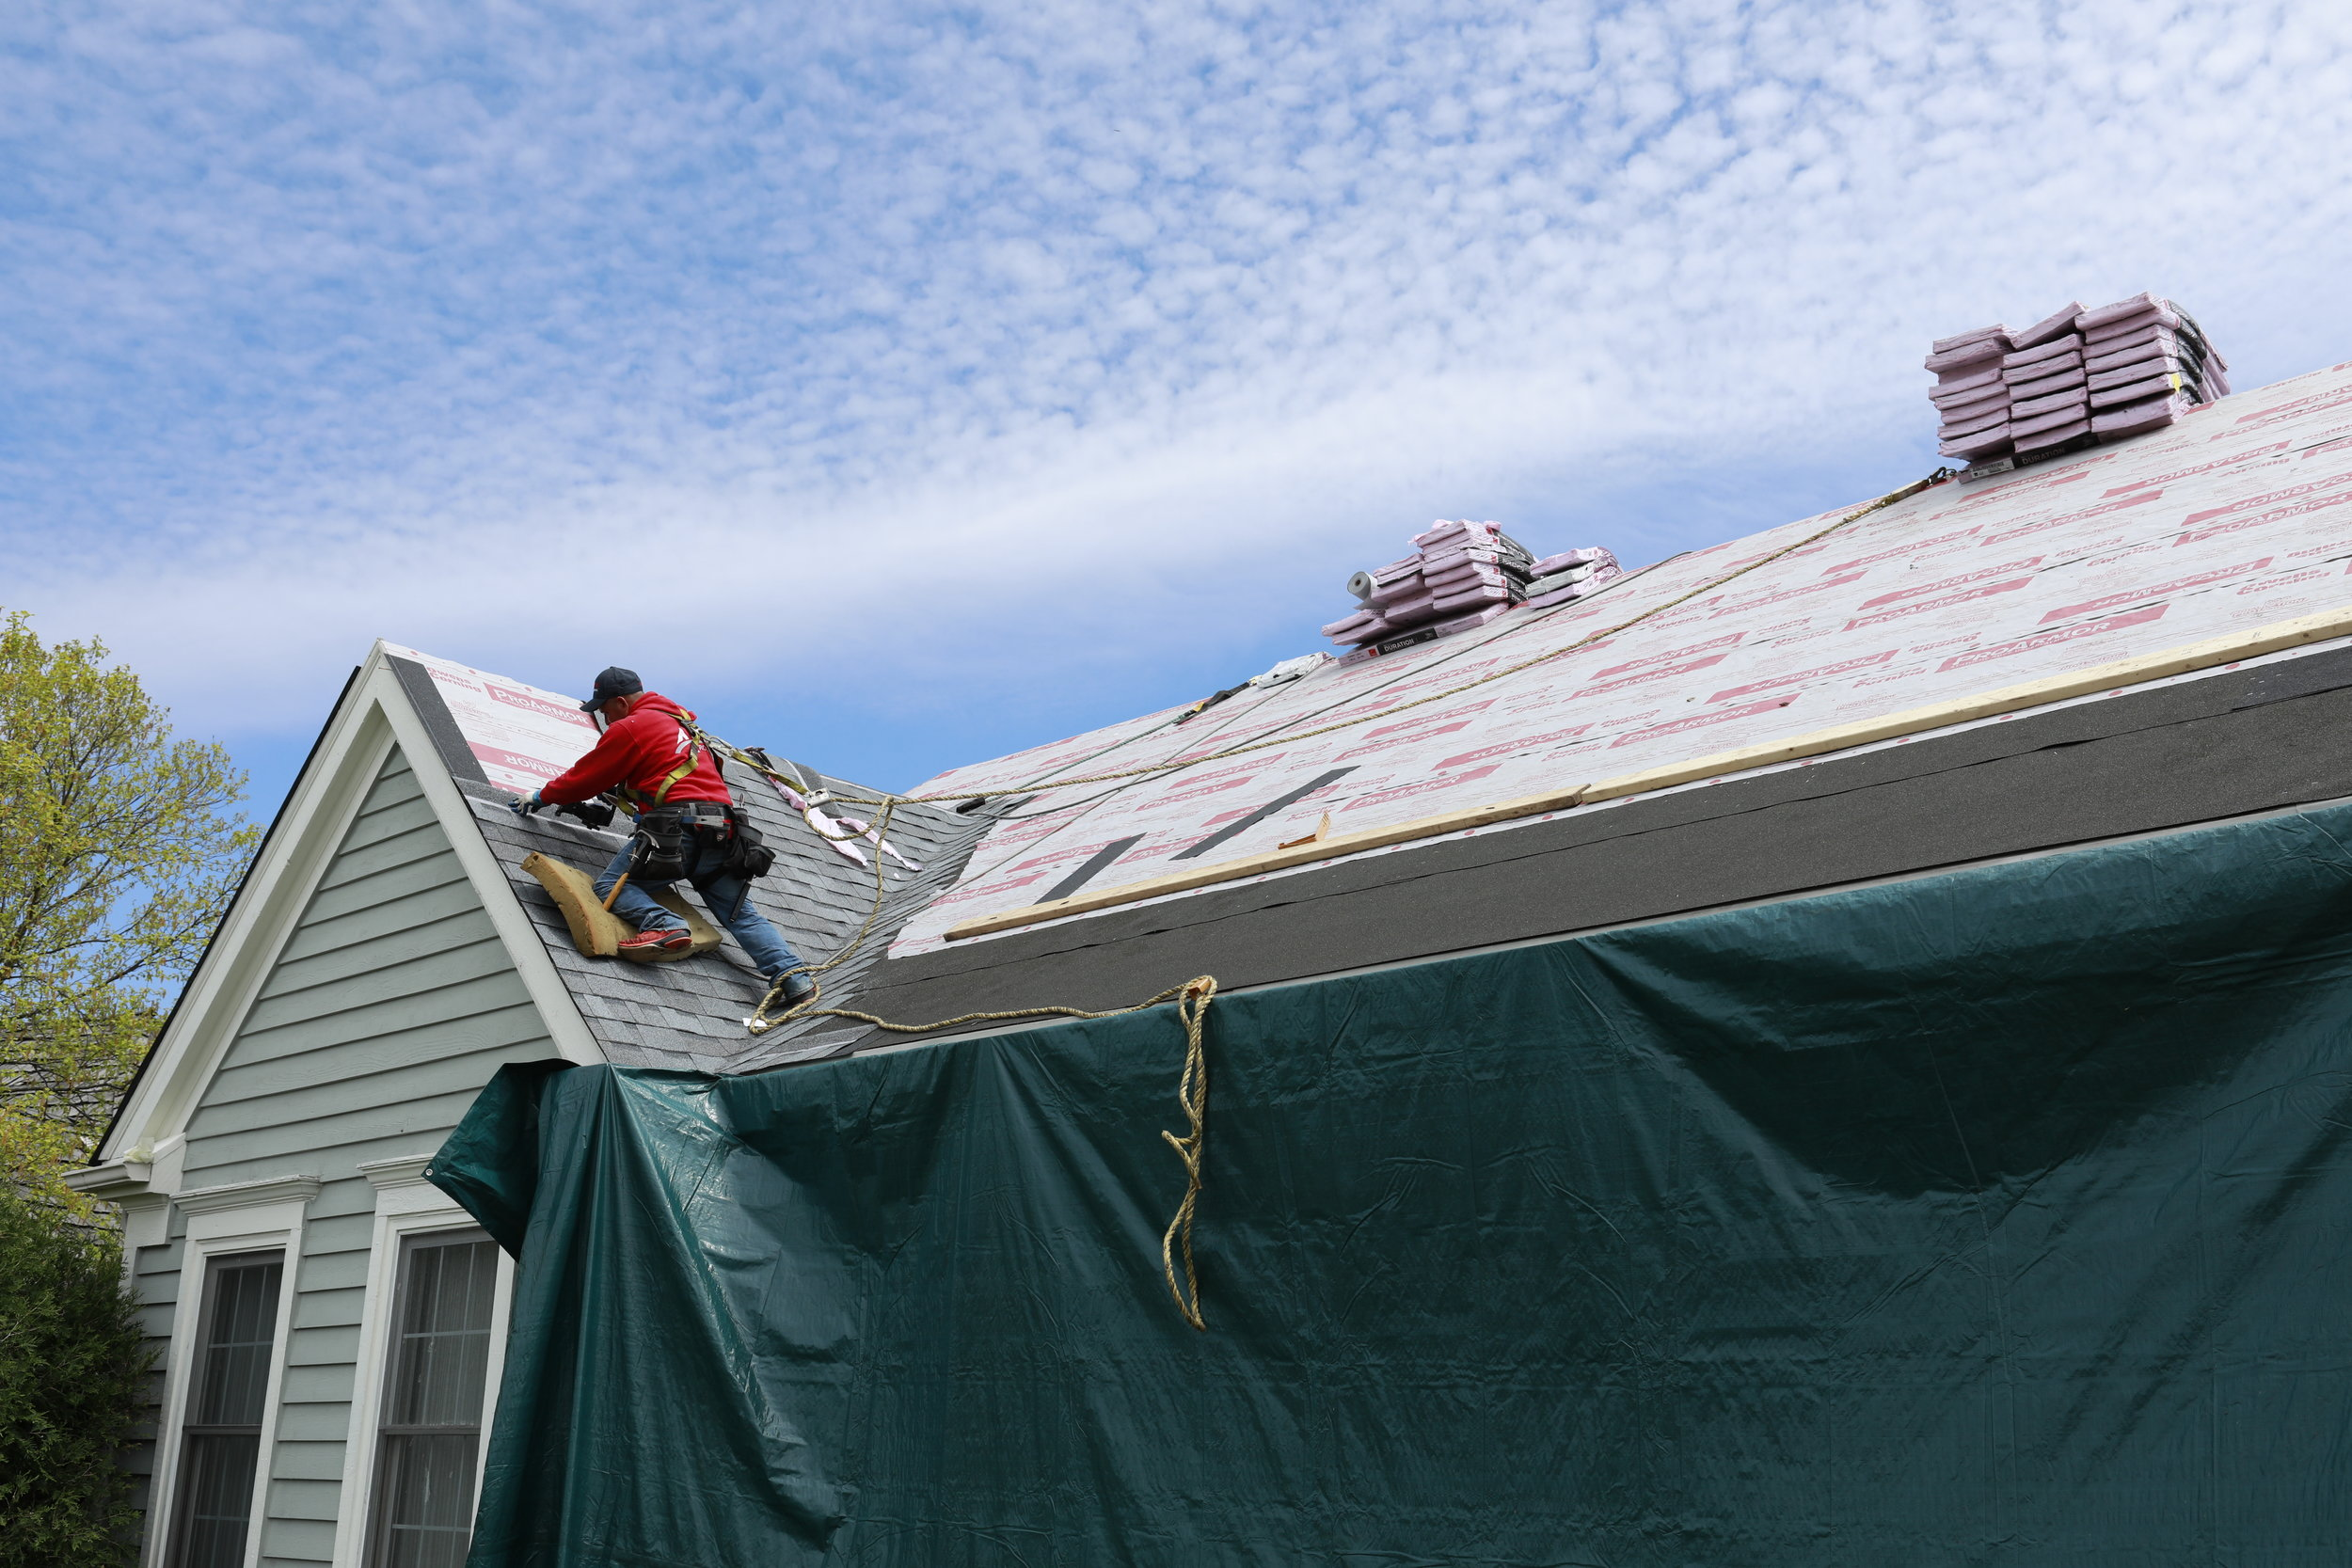 Artex Roofing is Chicago's south suburban best shingle roof replacement company